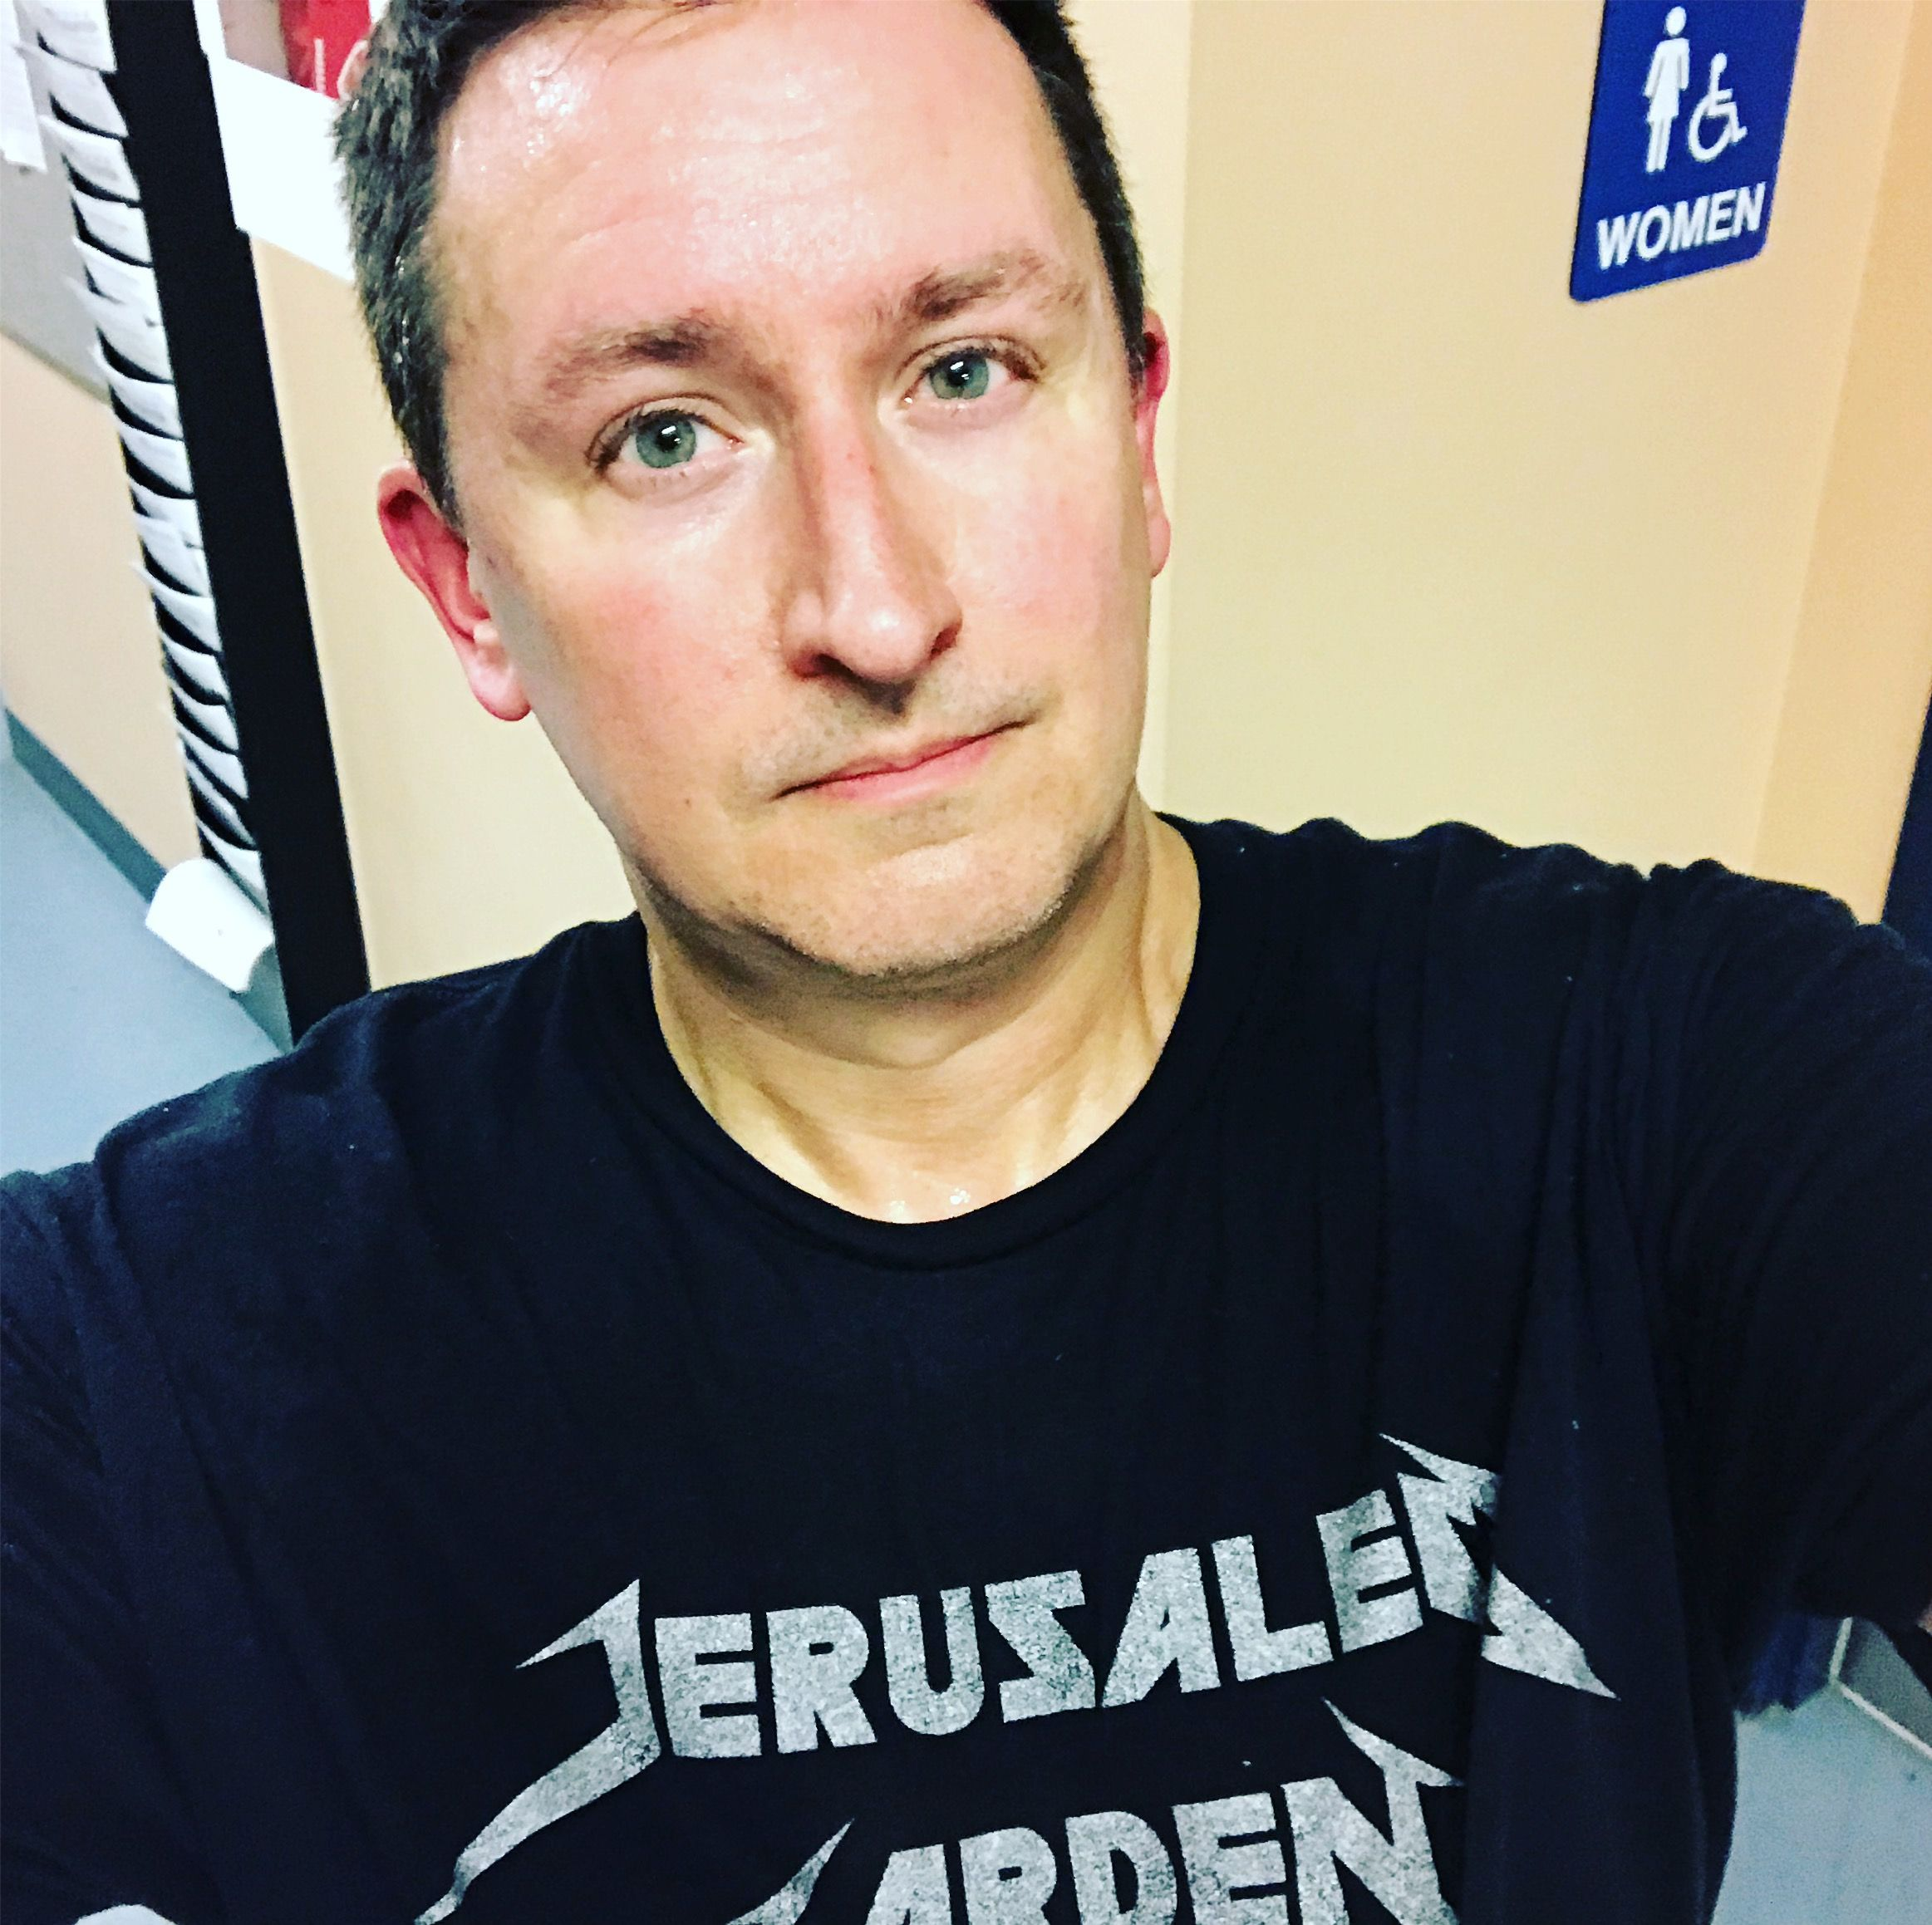 Jerusalemgarden Tee Not A Political Statement Not A Religious